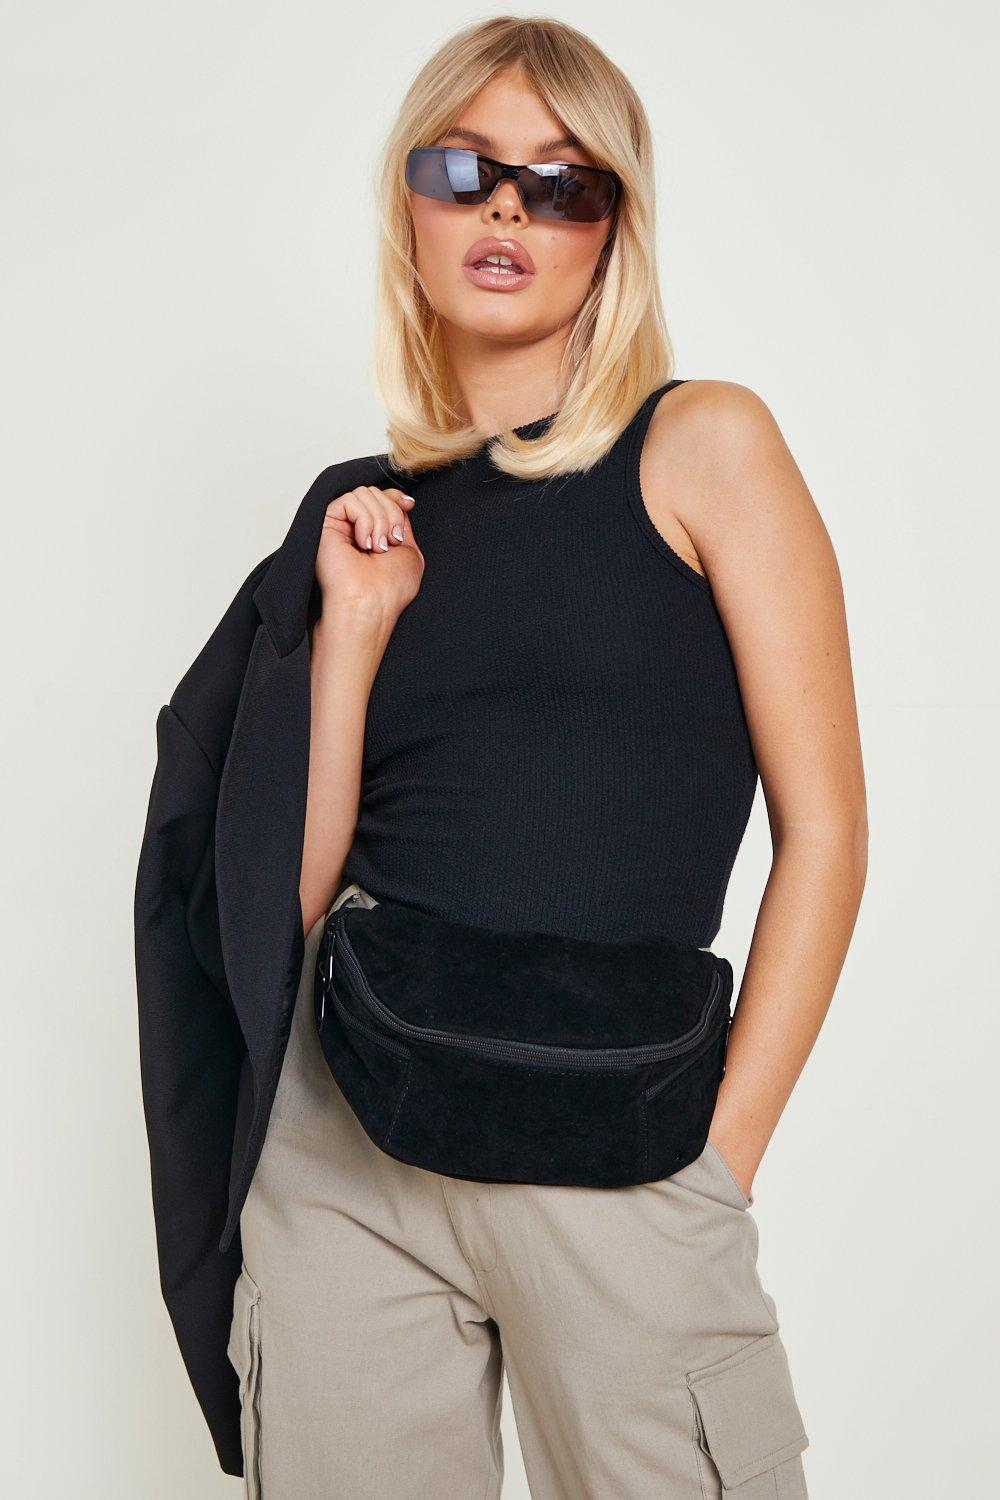 boohoo Womens Oversized Suedette Bumbag - Black - One Size, Black